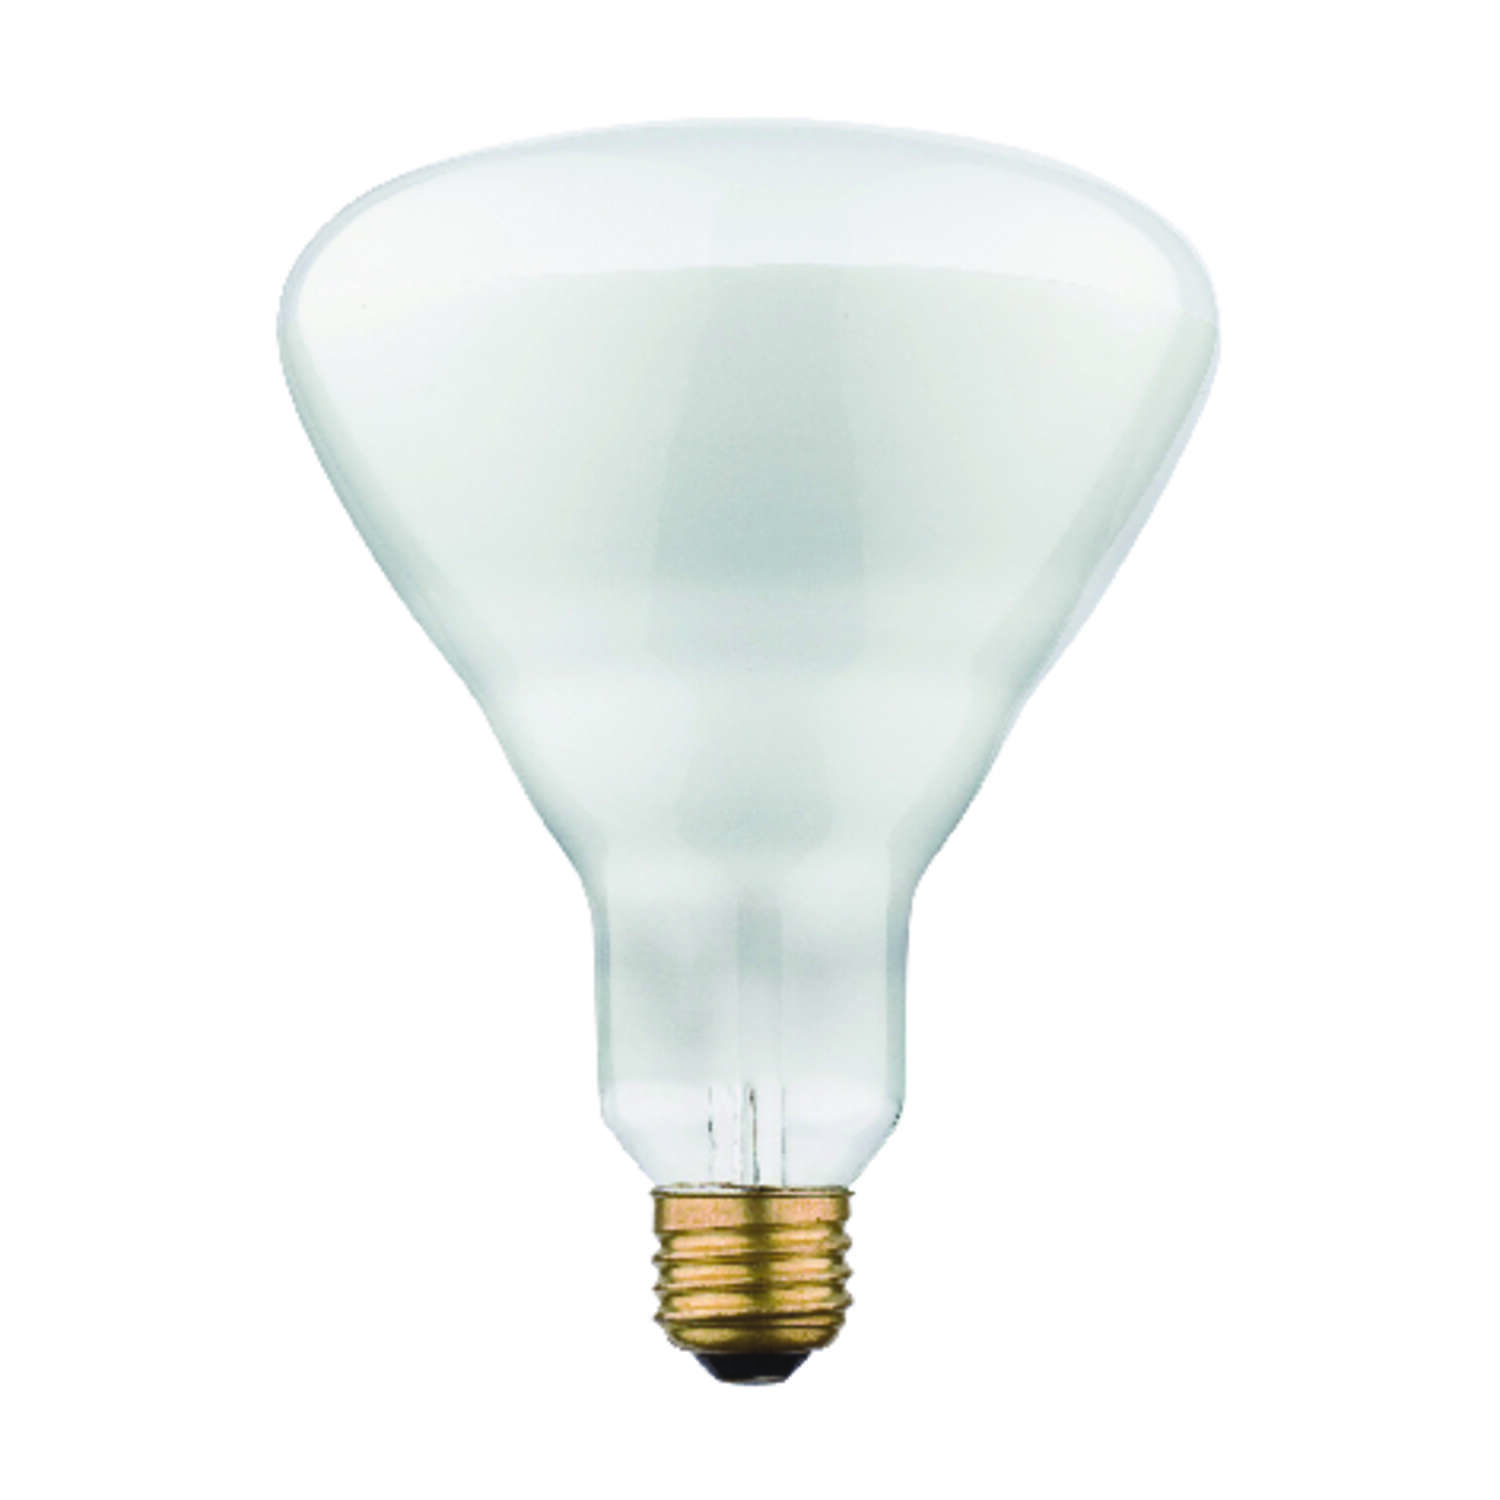 Westinghouse  65 watt BR40  Floodlight  Incandescent Bulb  E26 (Medium)  Soft White